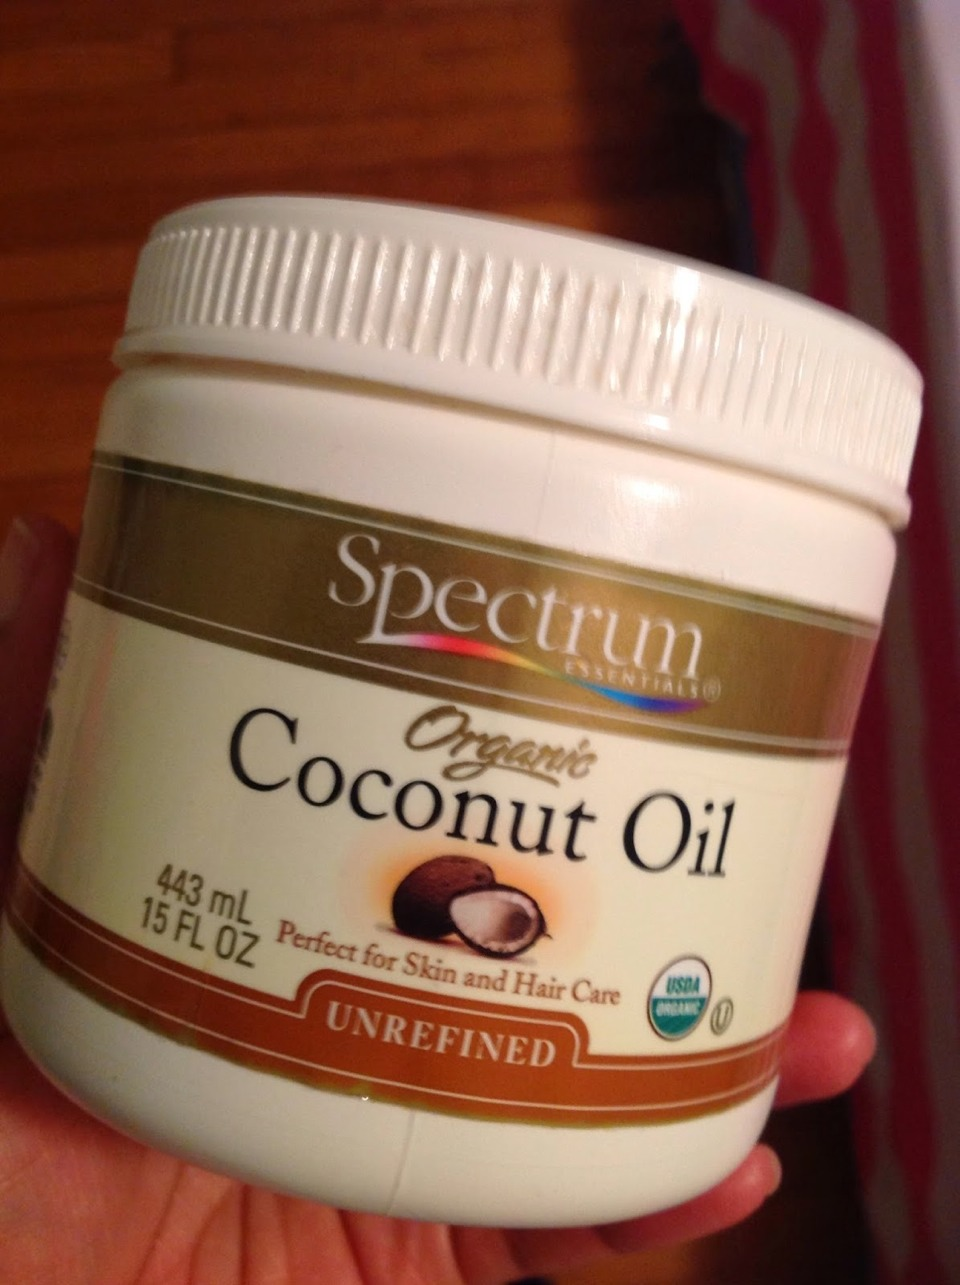 I have this one too. I know a lot of you have heard of this breakthrough beauty product by now. But did you know that it can actually reduce the appearance of cellulite and stretch marks if applied like a lotion? Awesome! Check out my tip on 101 coconut oil uses!!